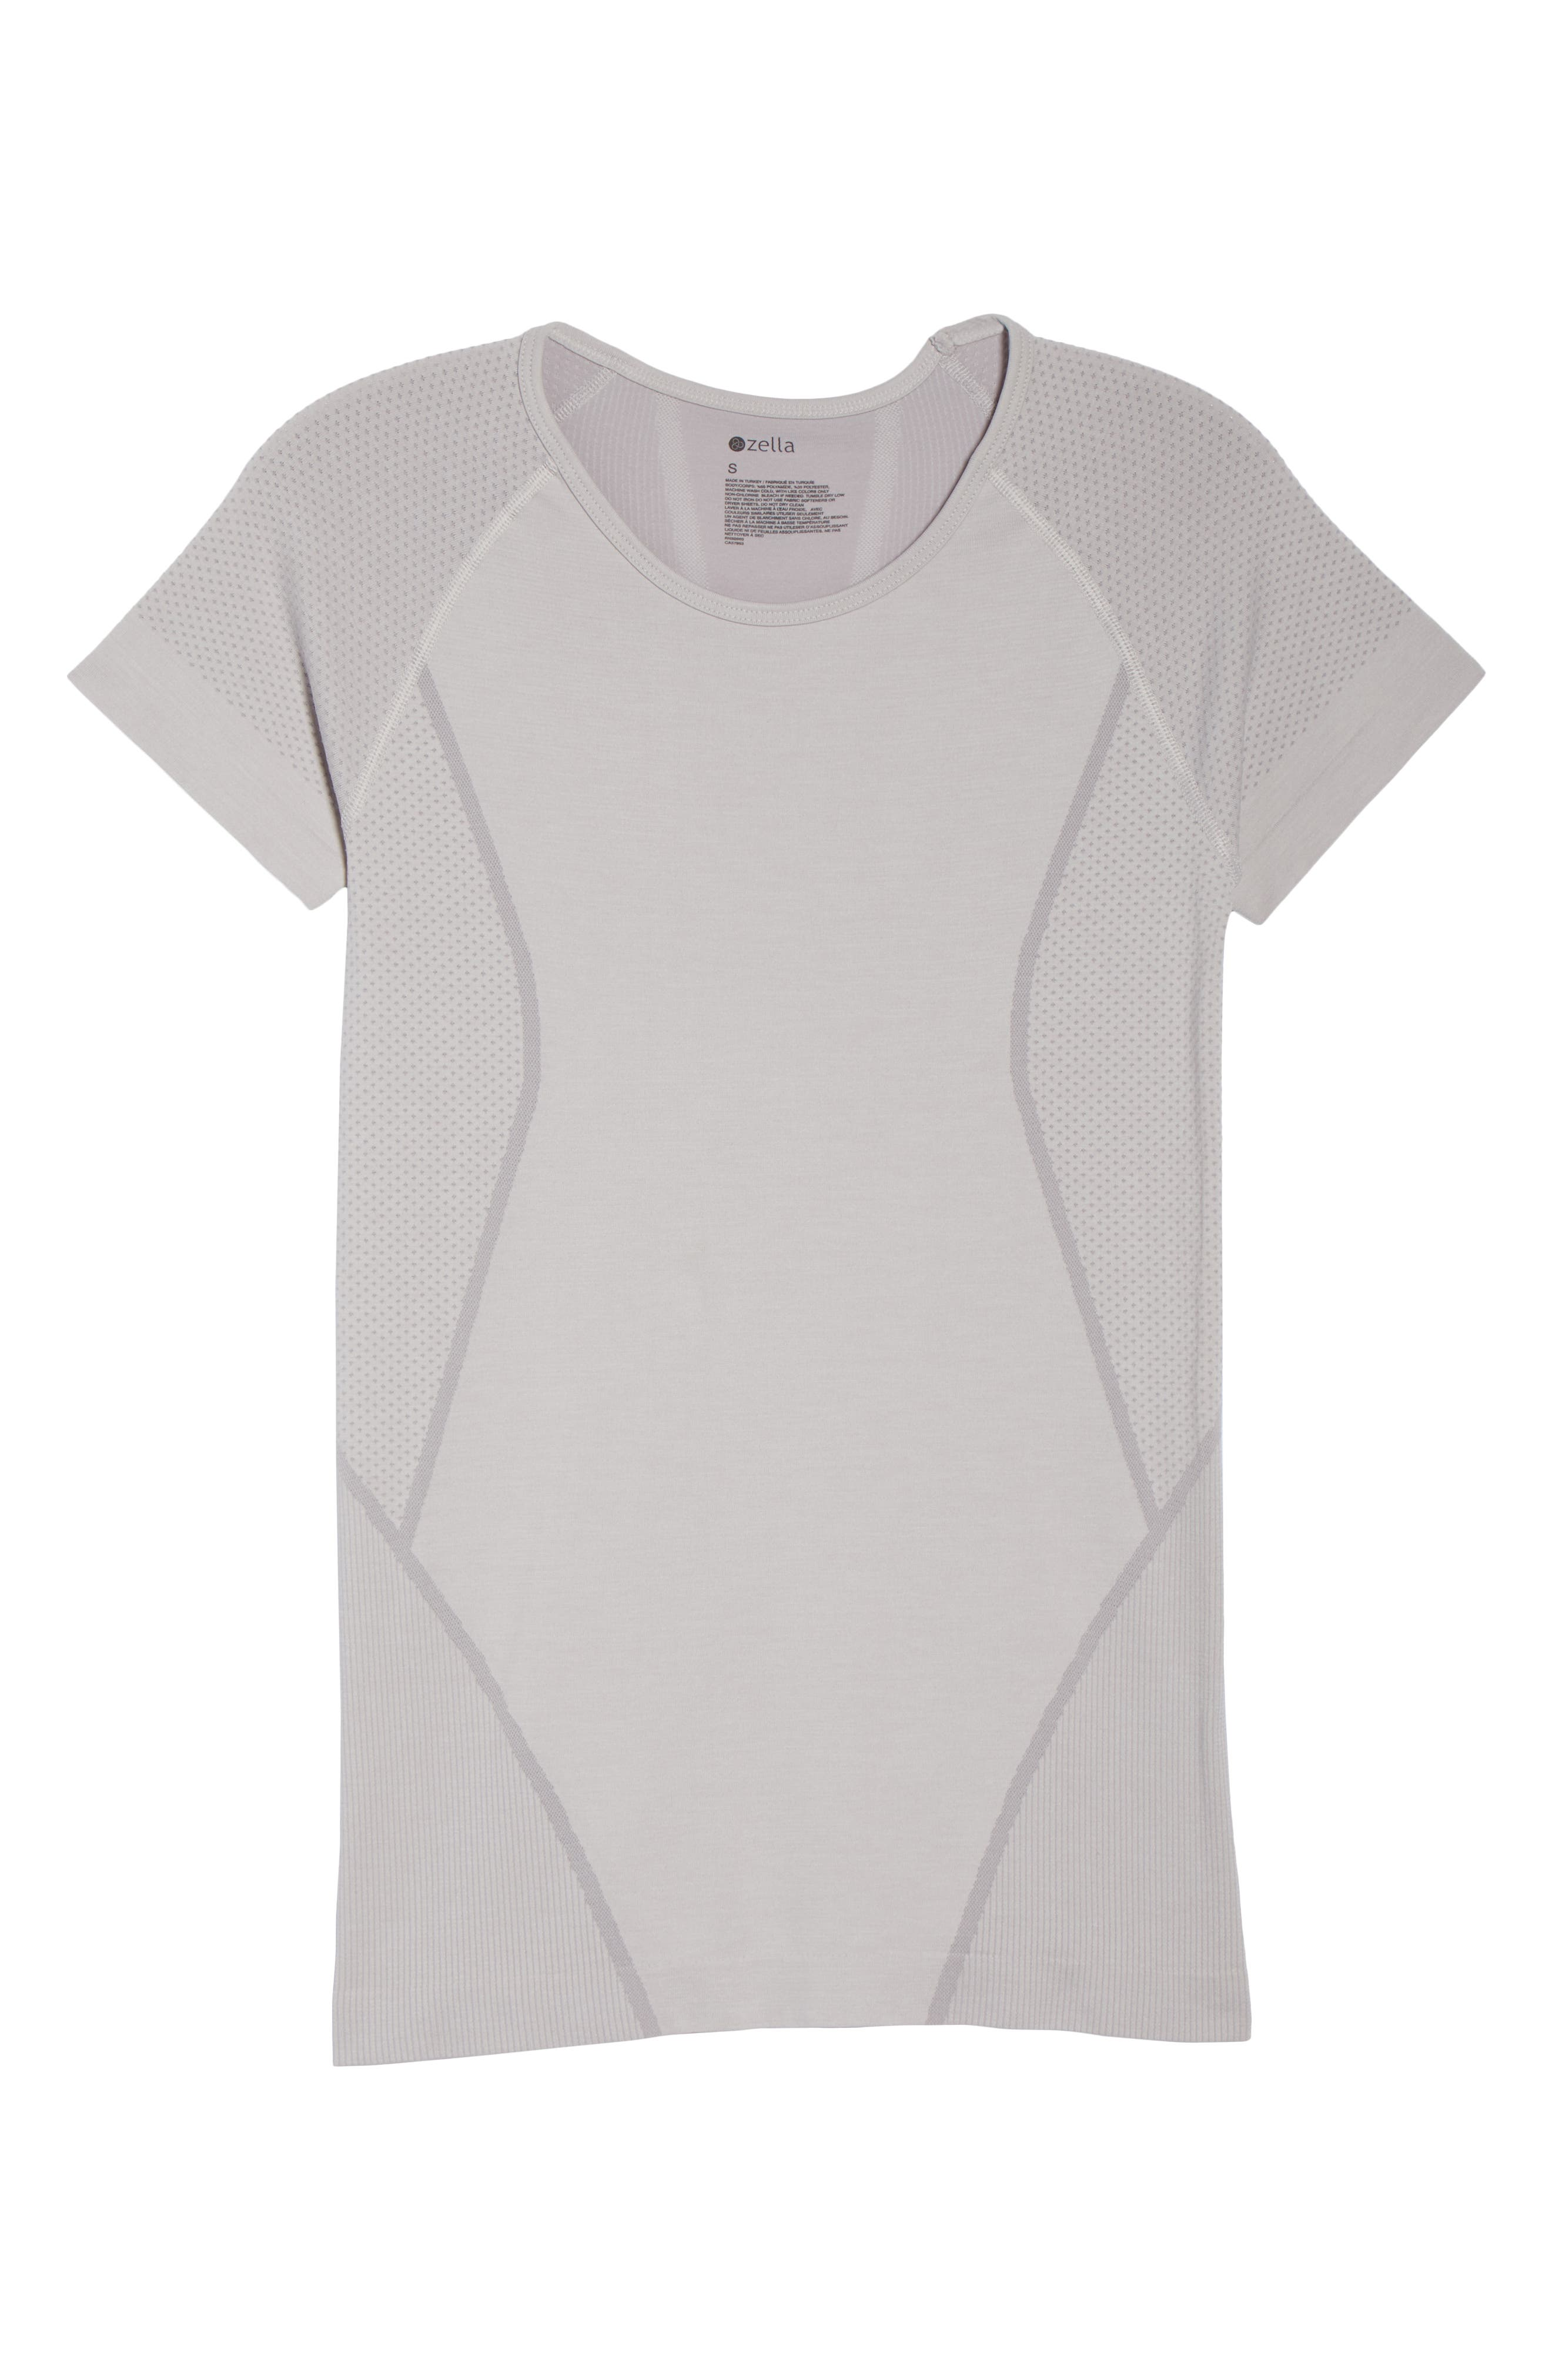 Stand Out Seamless Training Tee,                             Alternate thumbnail 7, color,                             GREY BIRD